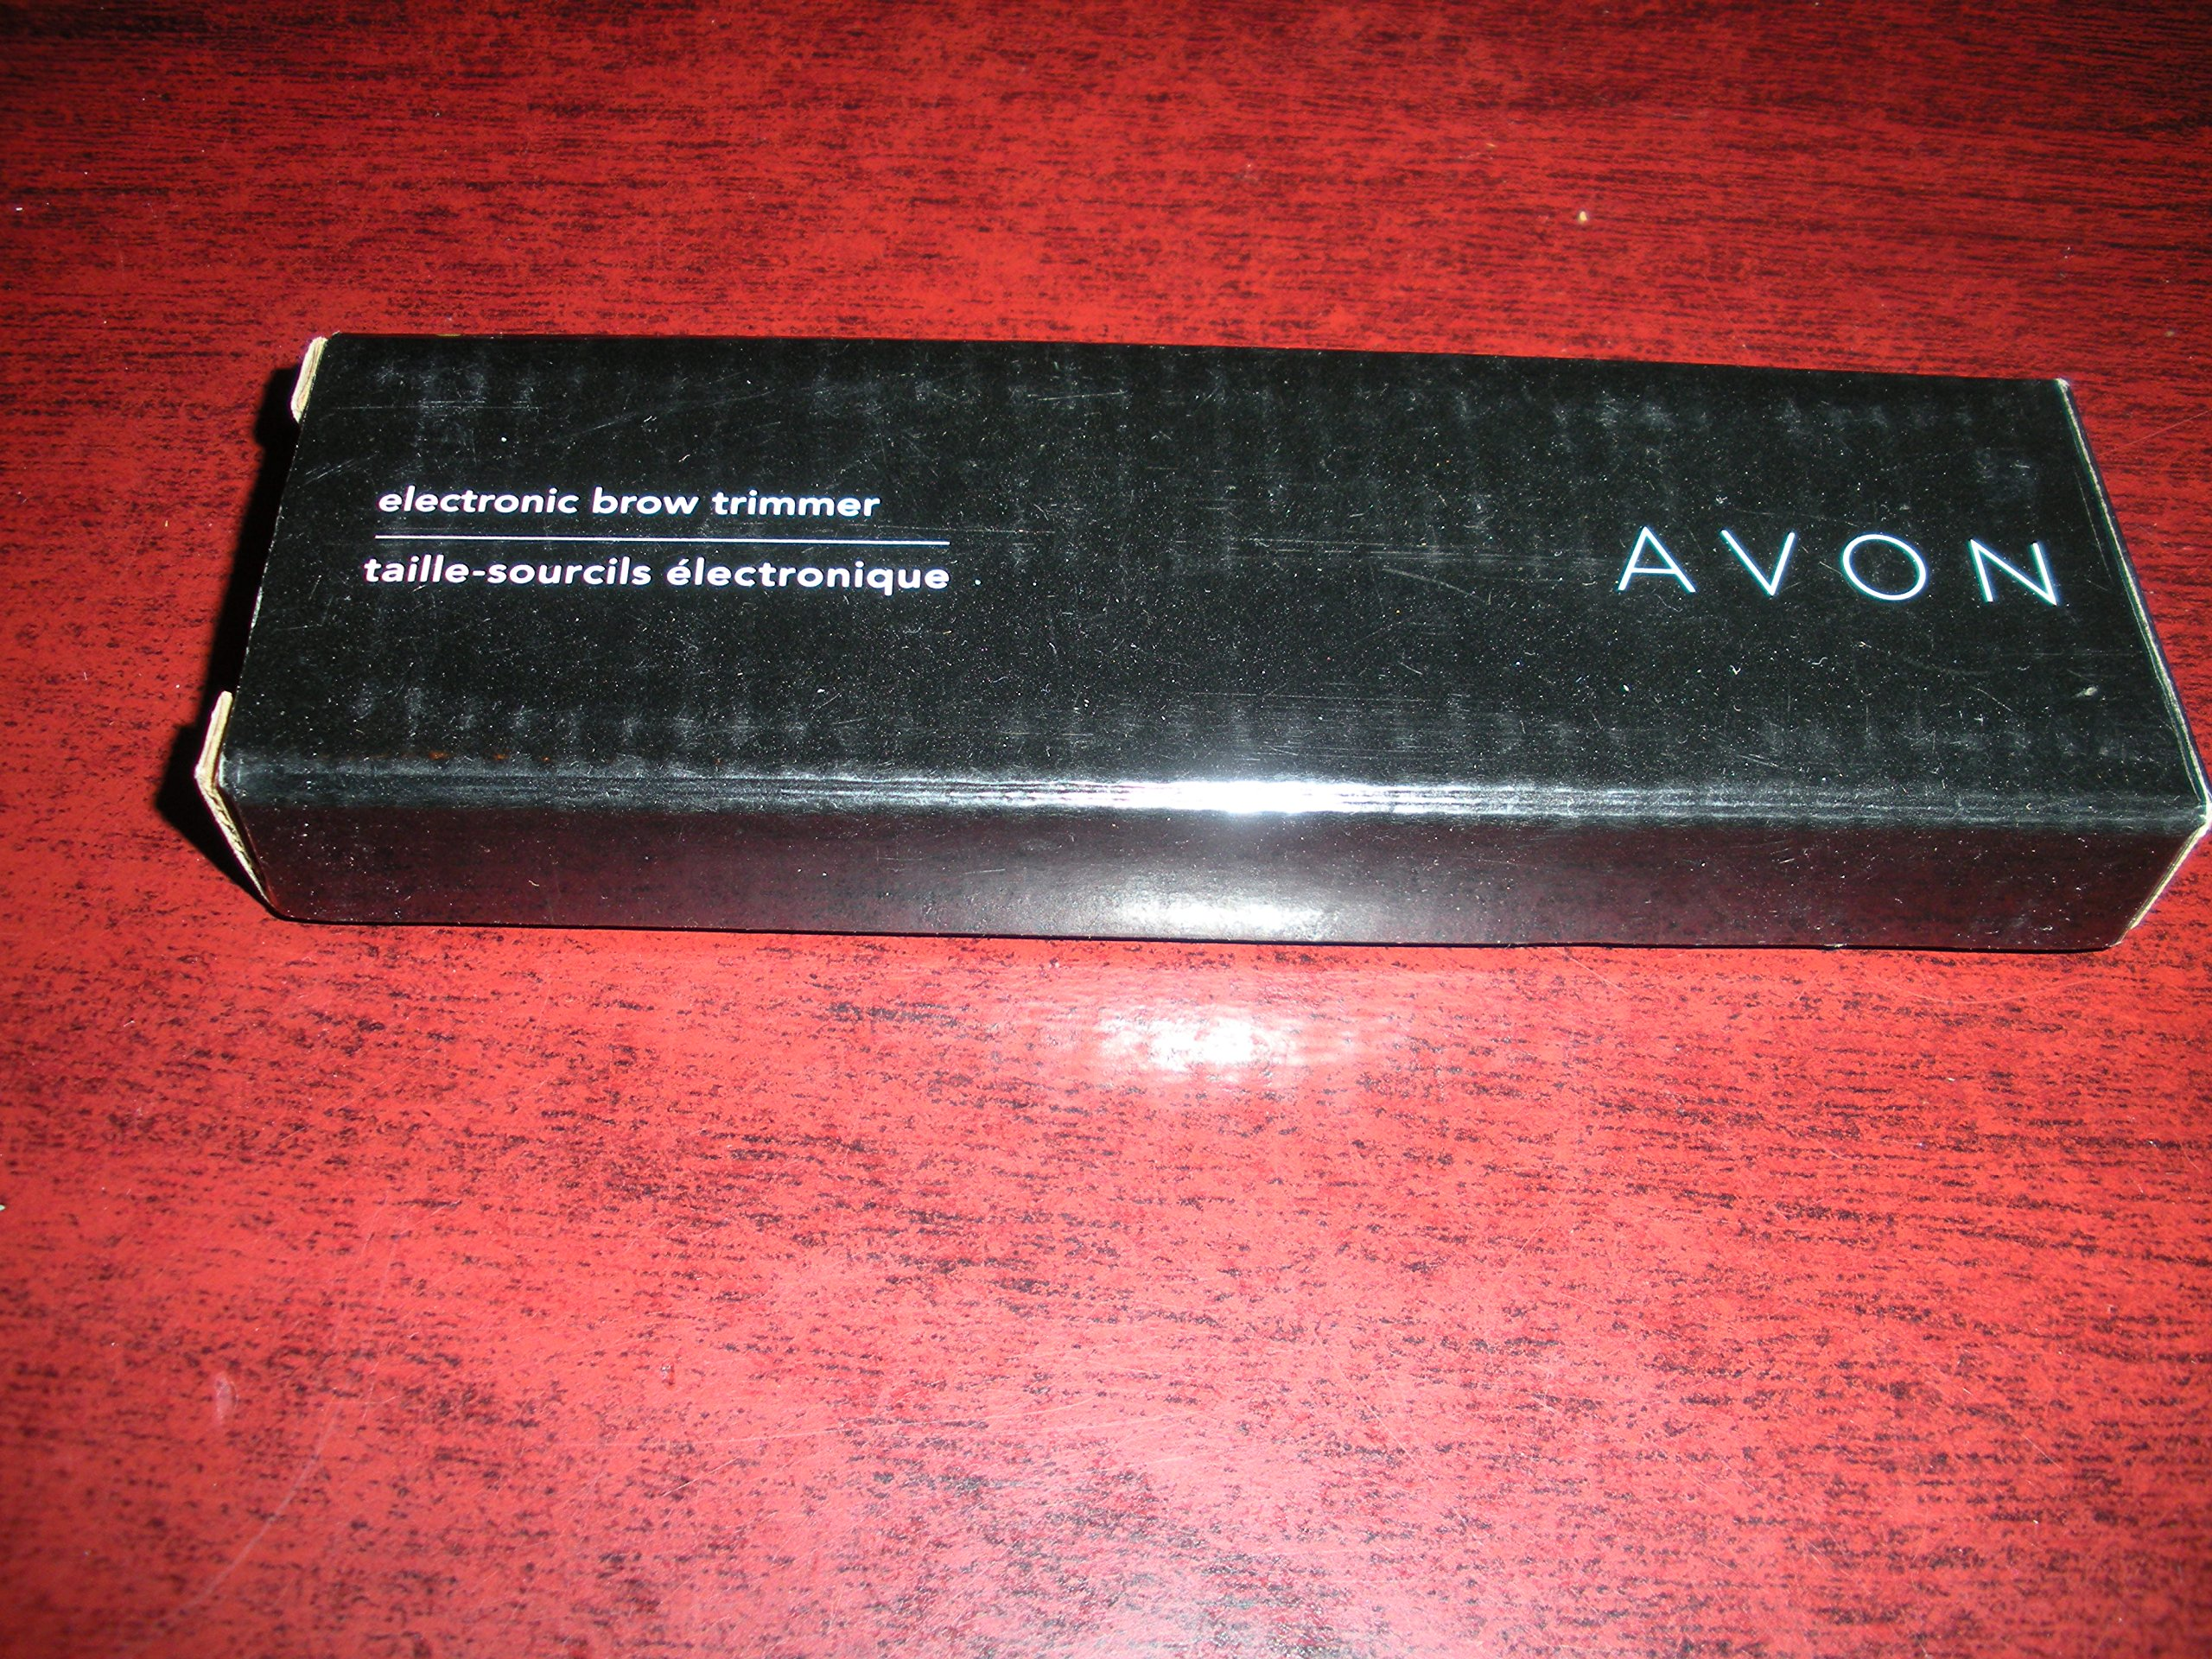 Avon Electronic Brow Trimmer